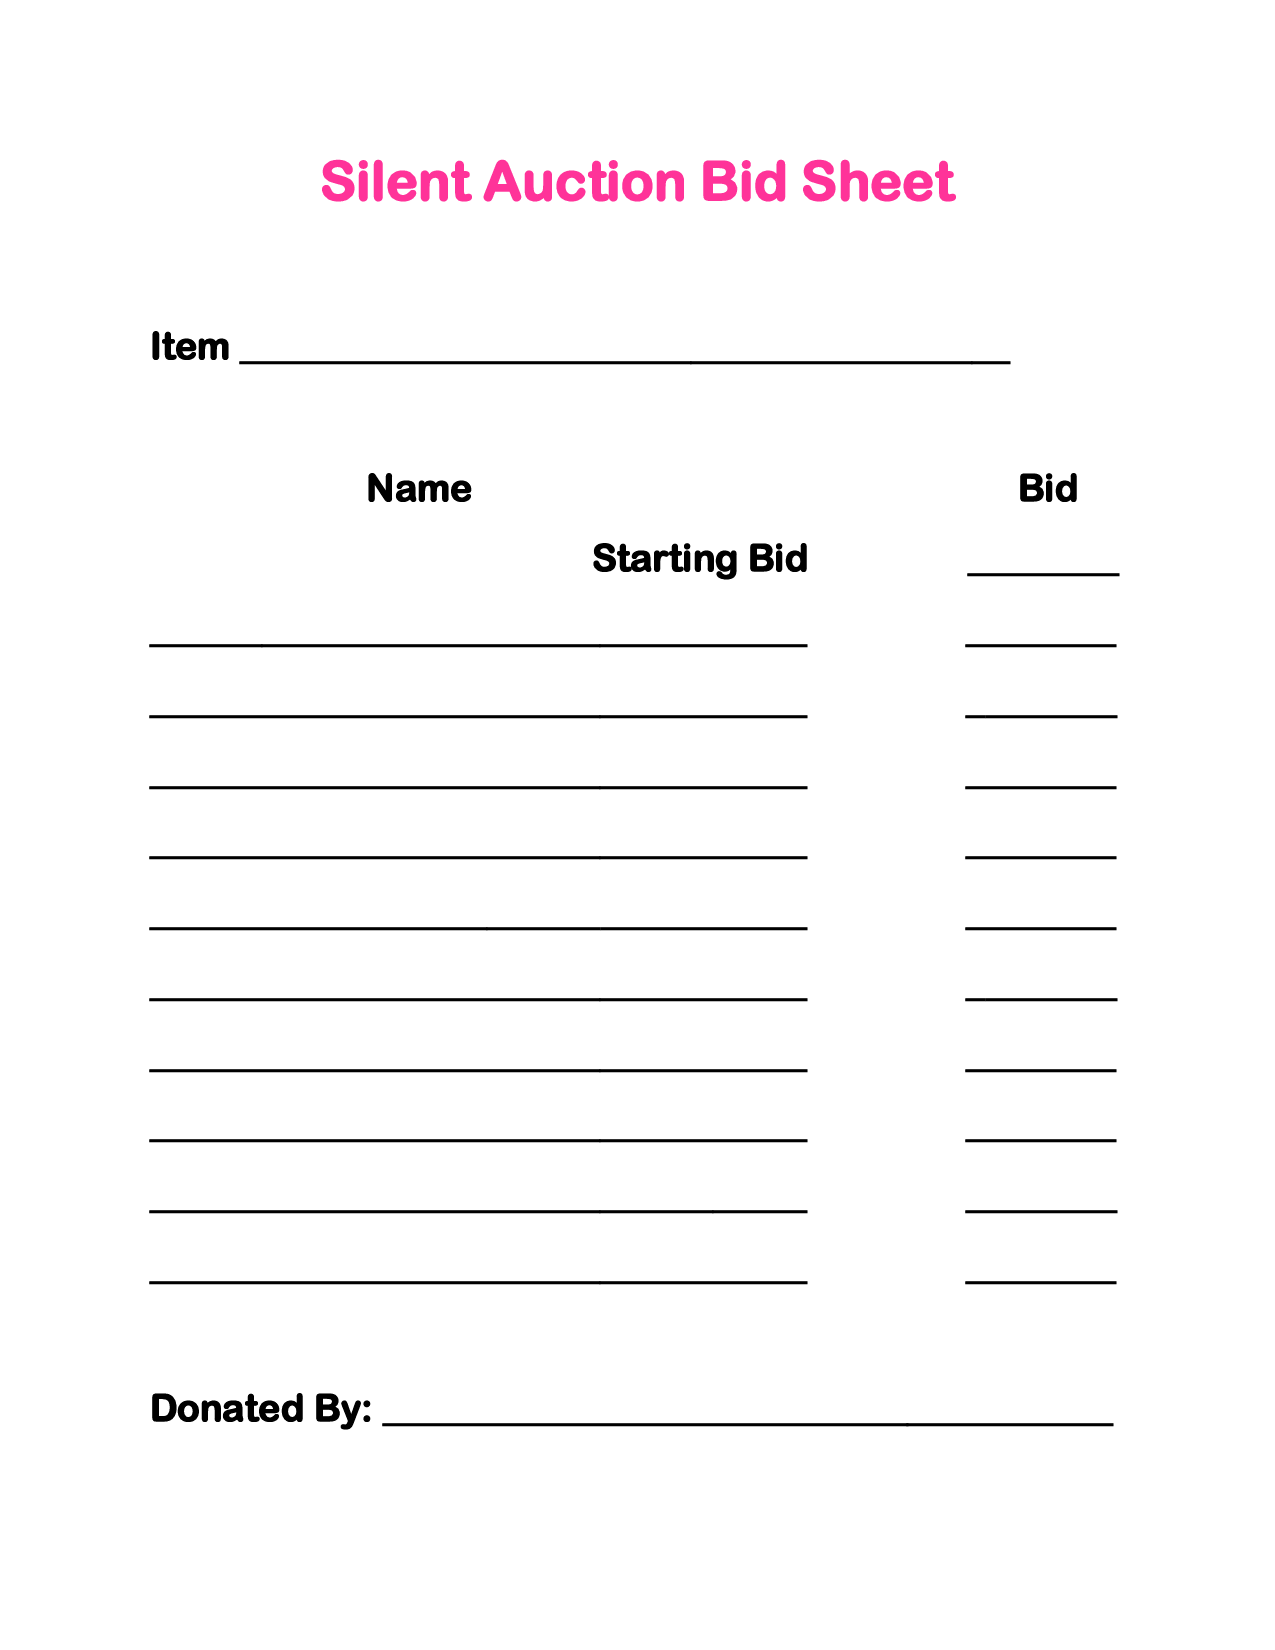 sample bid sheet Silent Auction Bid Sheets | Party Planning ...